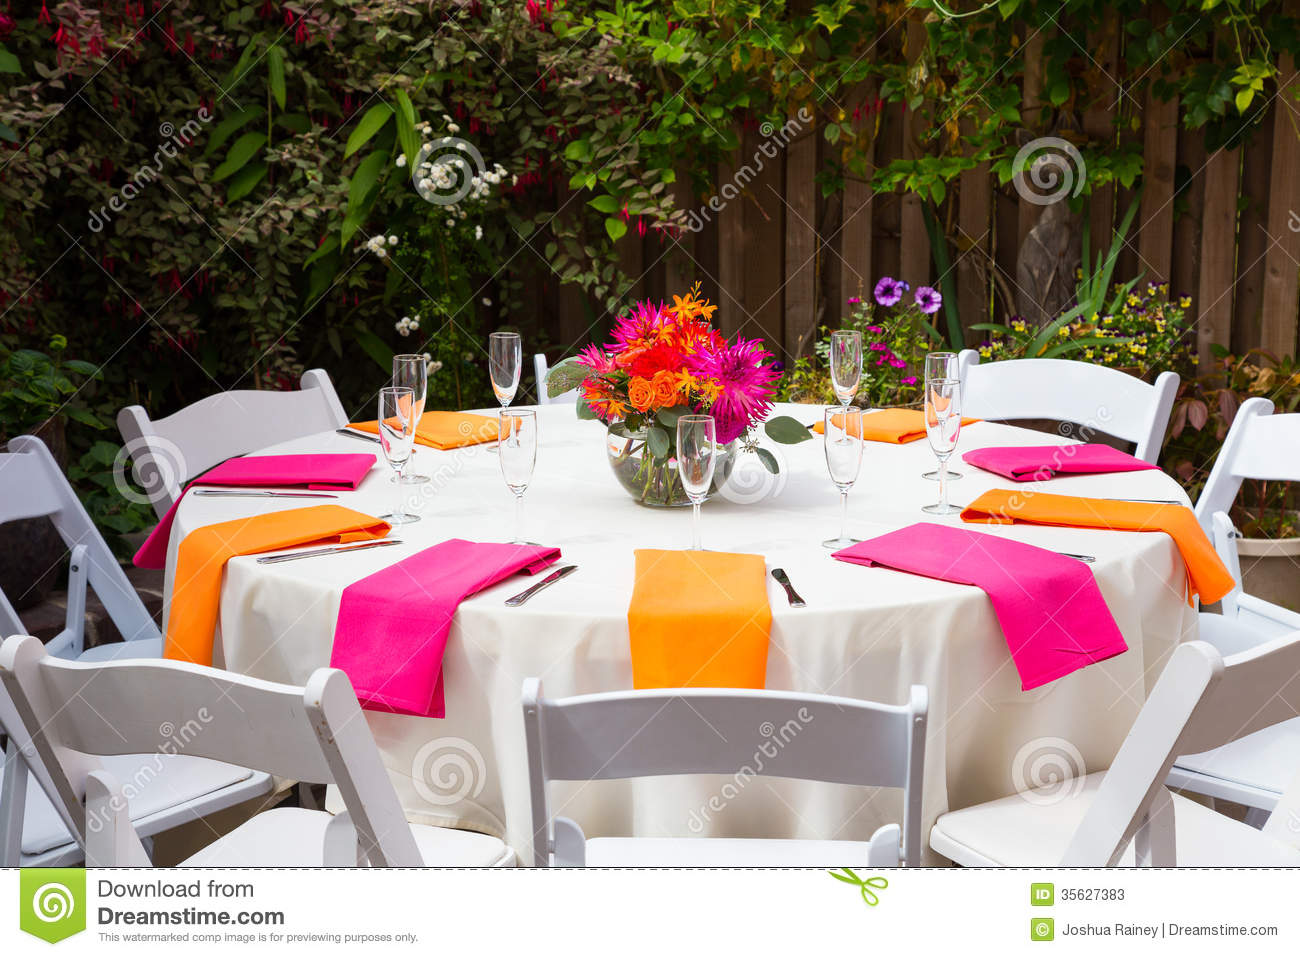 Wedding Receptions Tables.Wedding Reception Tables Stock Image Image Of Decorate 35627383